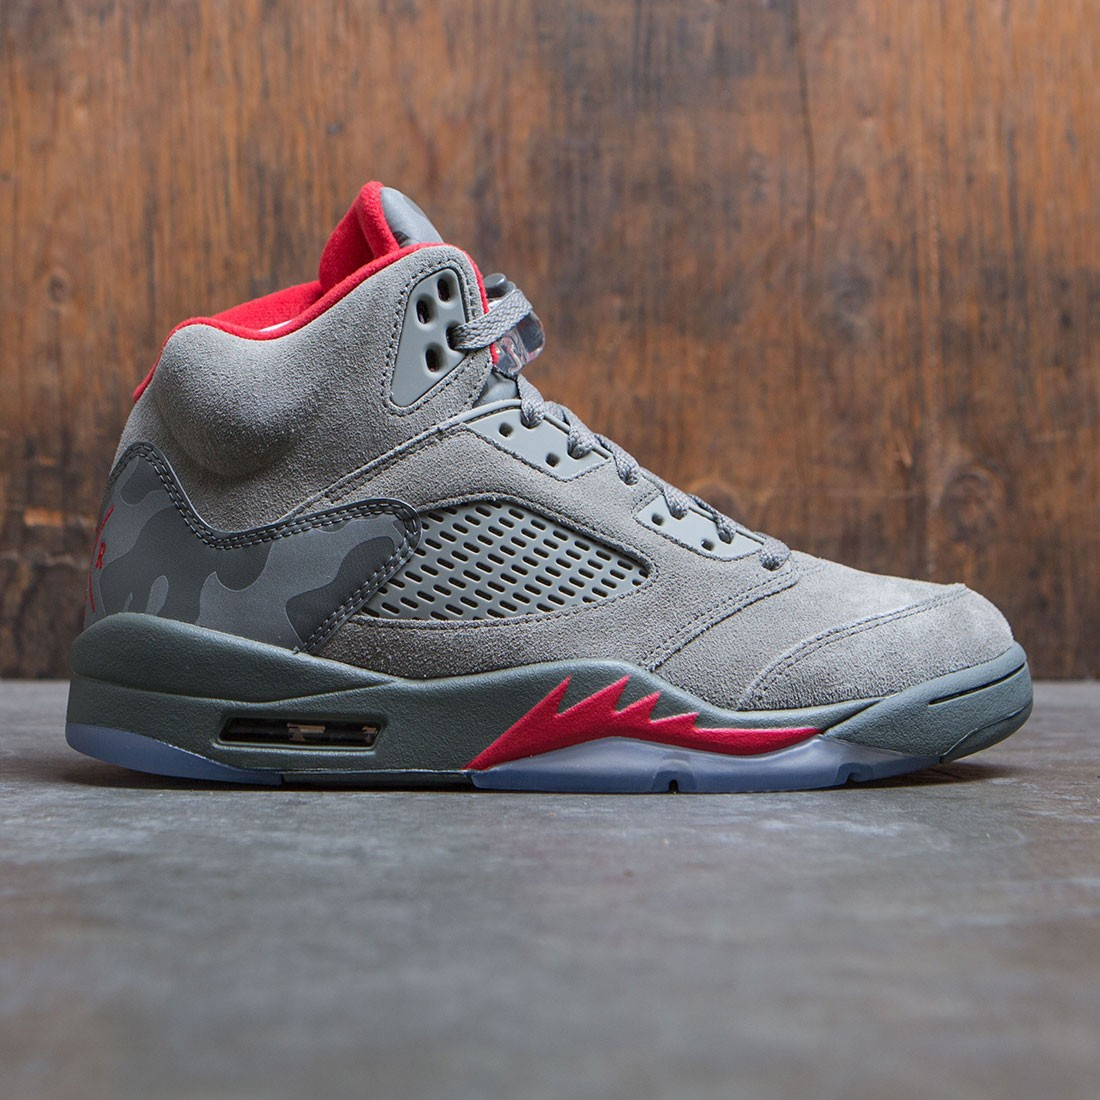 f88a82a79ce9 jordan men air jordan 5 retro dark stucco university red river rock